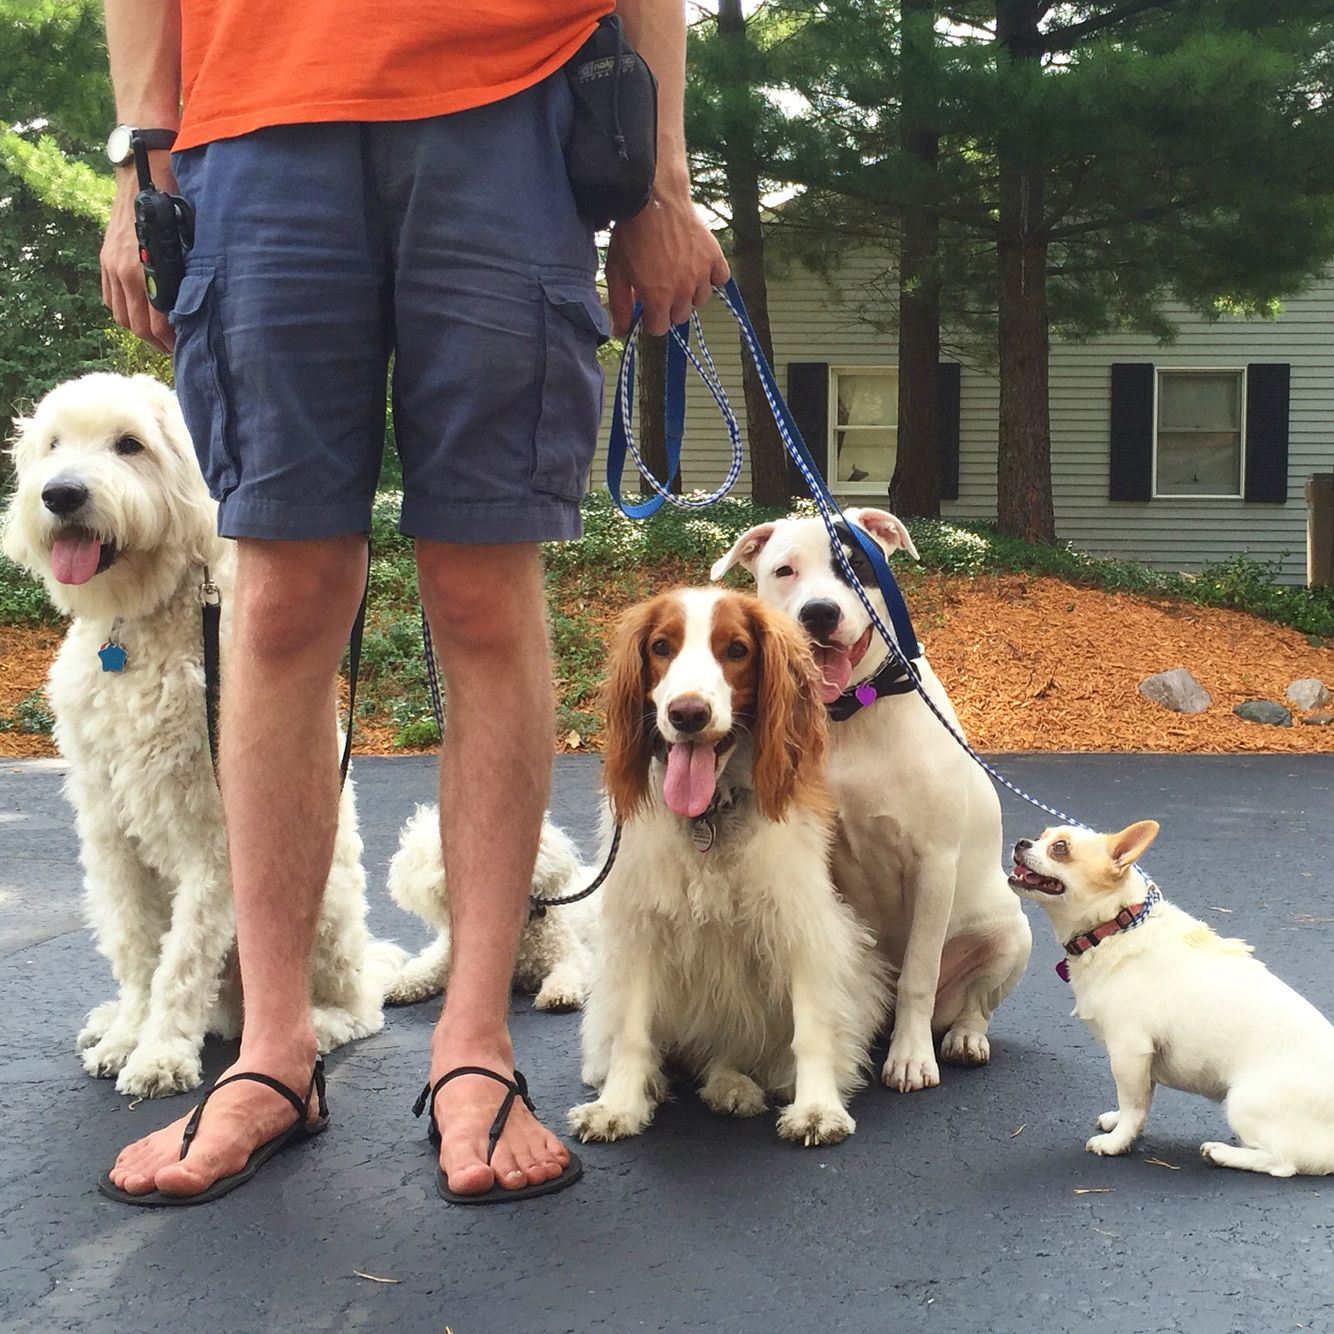 Discussion on this topic: How to DogSit when You Have a , how-to-dogsit-when-you-have-a/